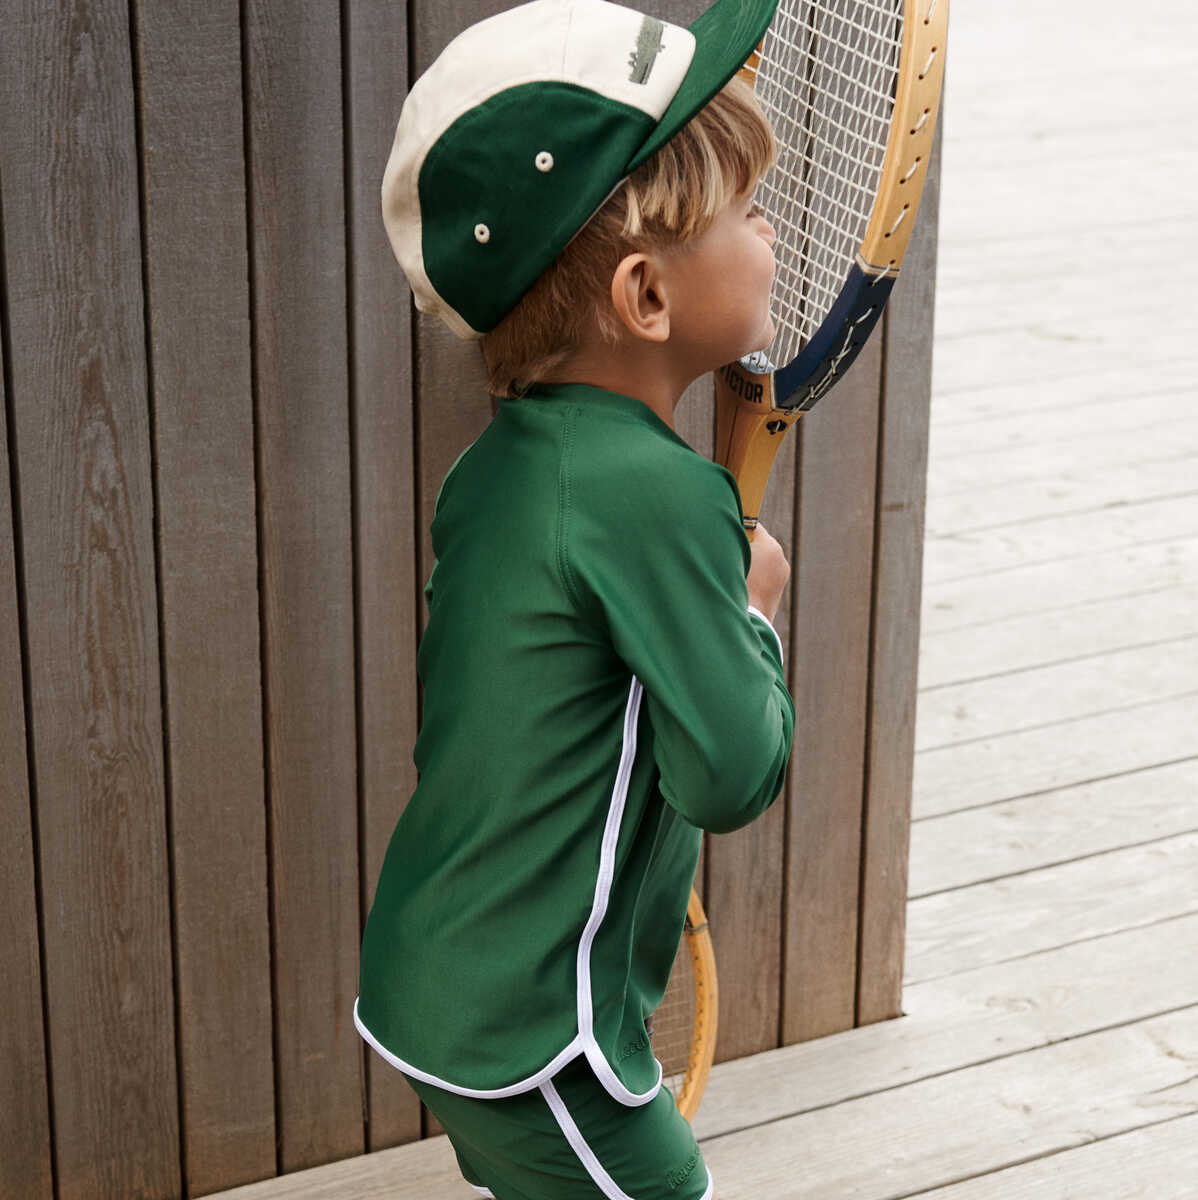 Liewood Rory Cap Hat/cap 7365 Crocodile garden green mix